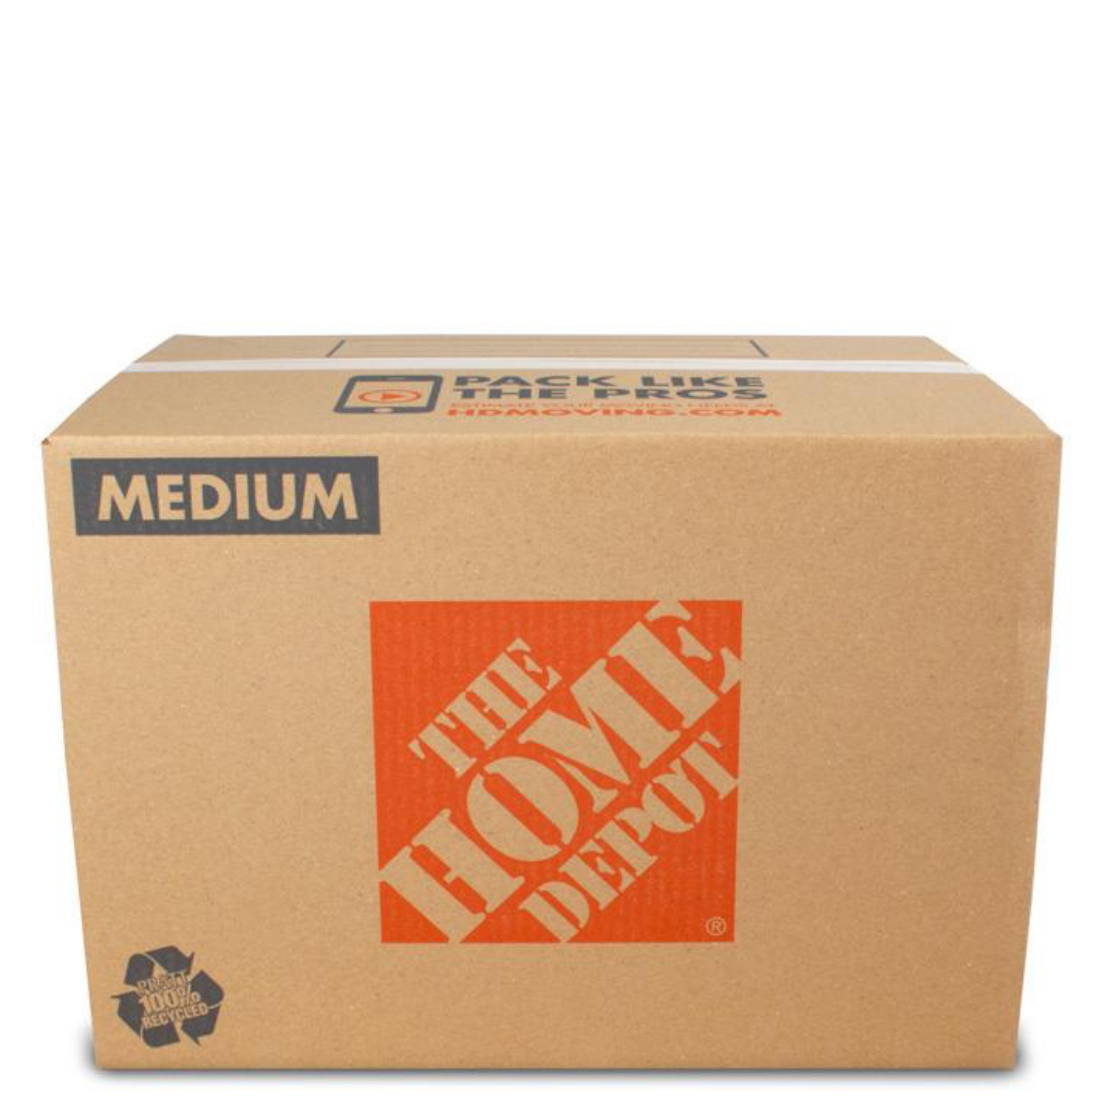 "Postal Moving Storage Cardboard Boxes 12 x 9 x 9/"" S//W"